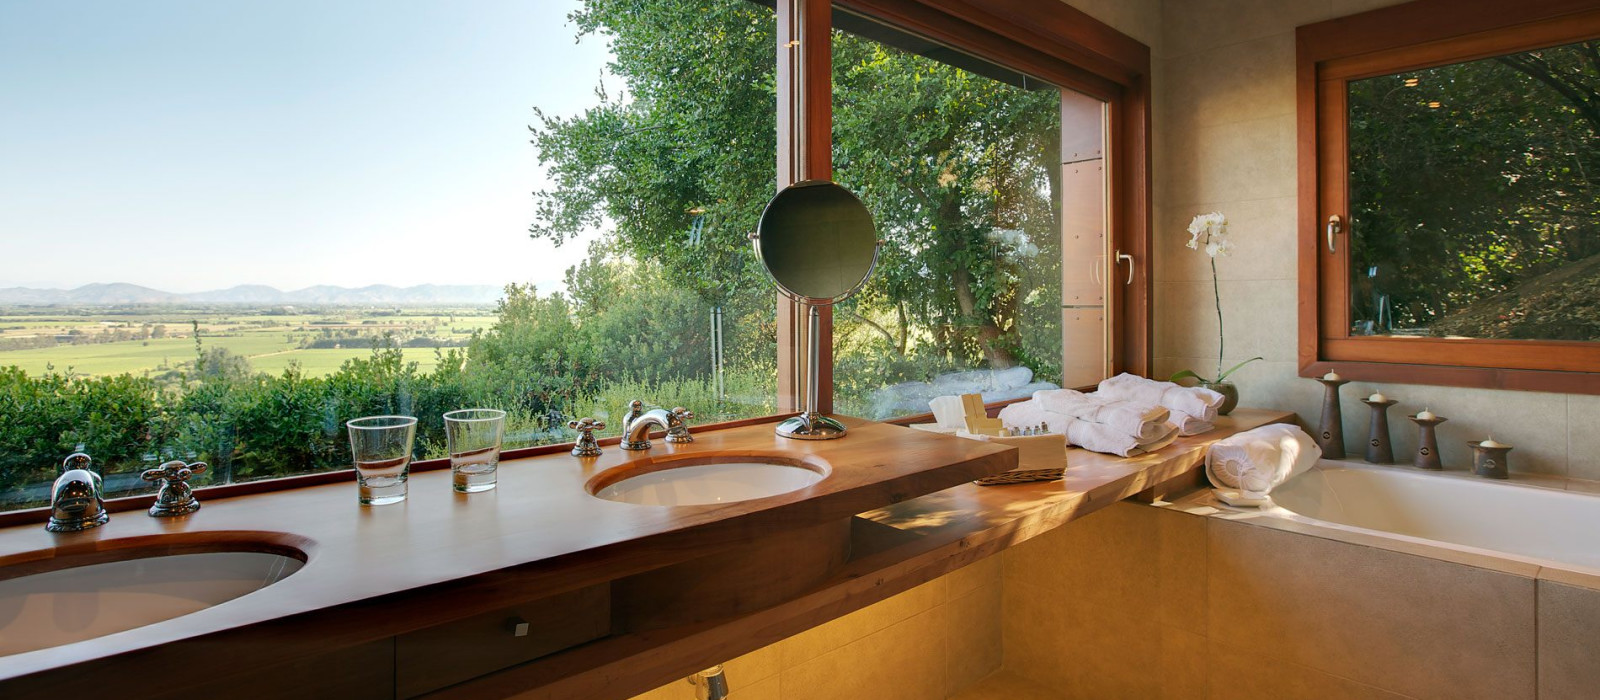 Hotel Clos Apalta Residence Chile